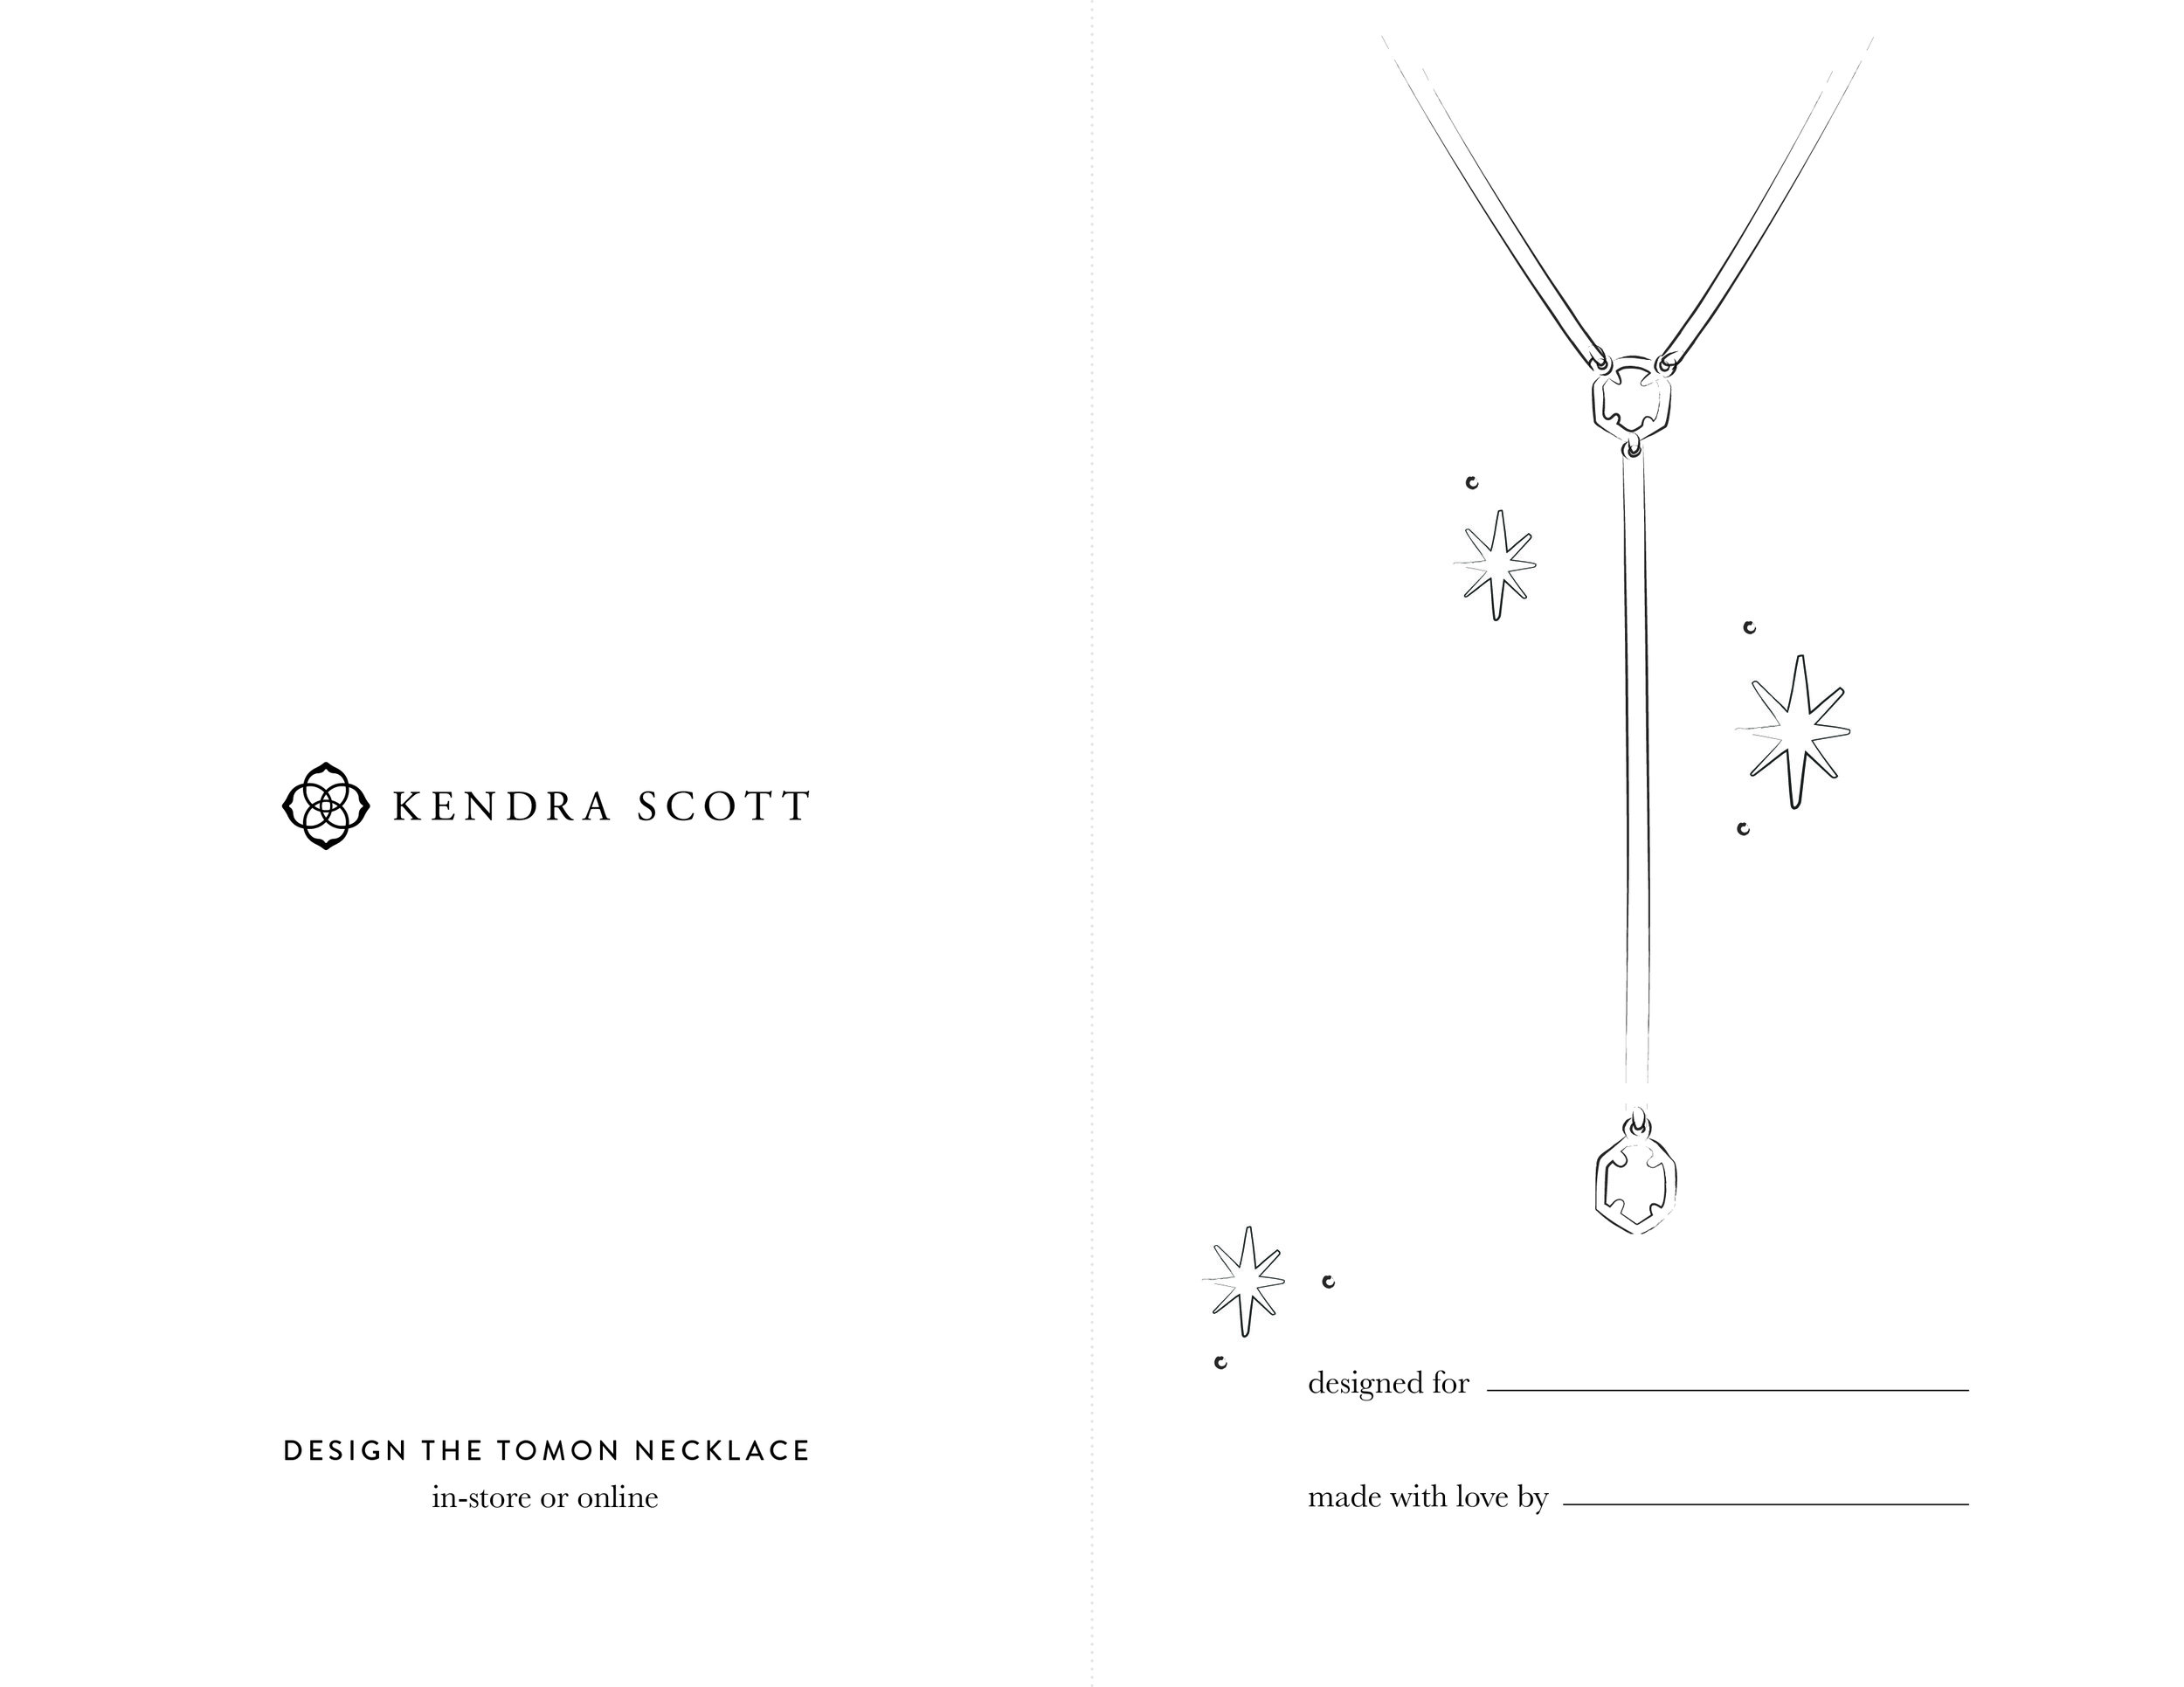 Kendra-Scott-Coloring-Sheets-04.jpg